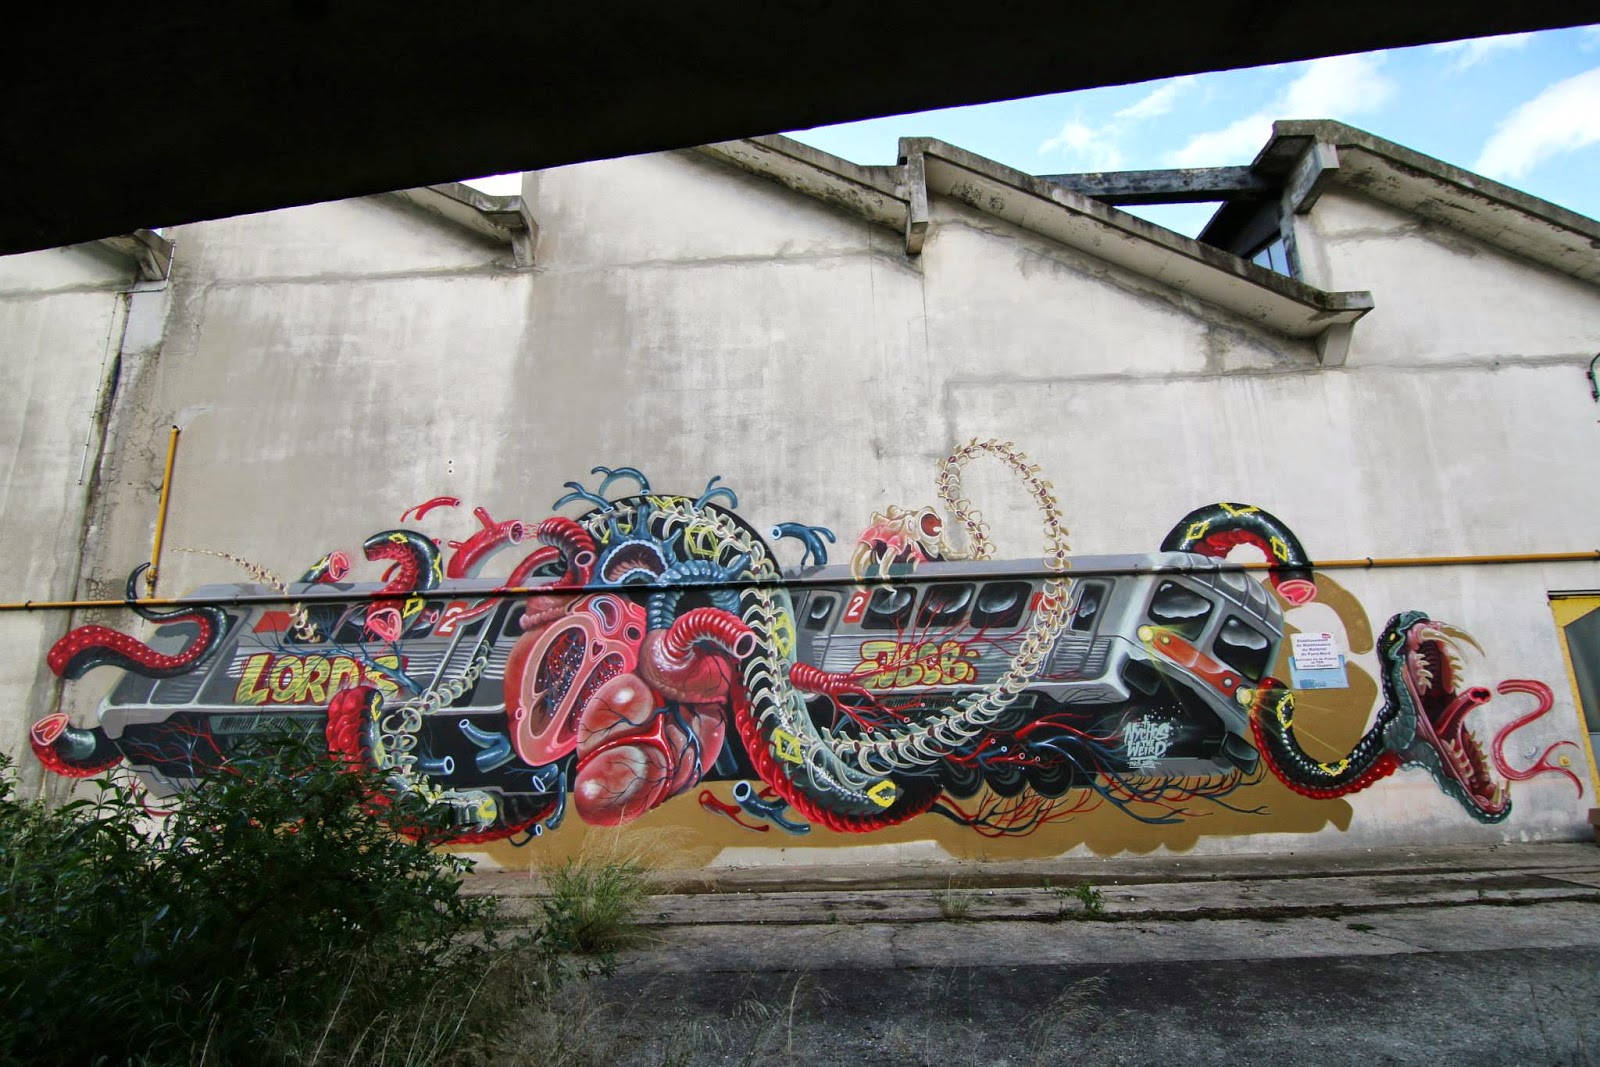 After the successful opening of his solo exhibition at OpenSpace Gallery, Nychos had enough free time to work on a new mural somewhere in Paris, France.